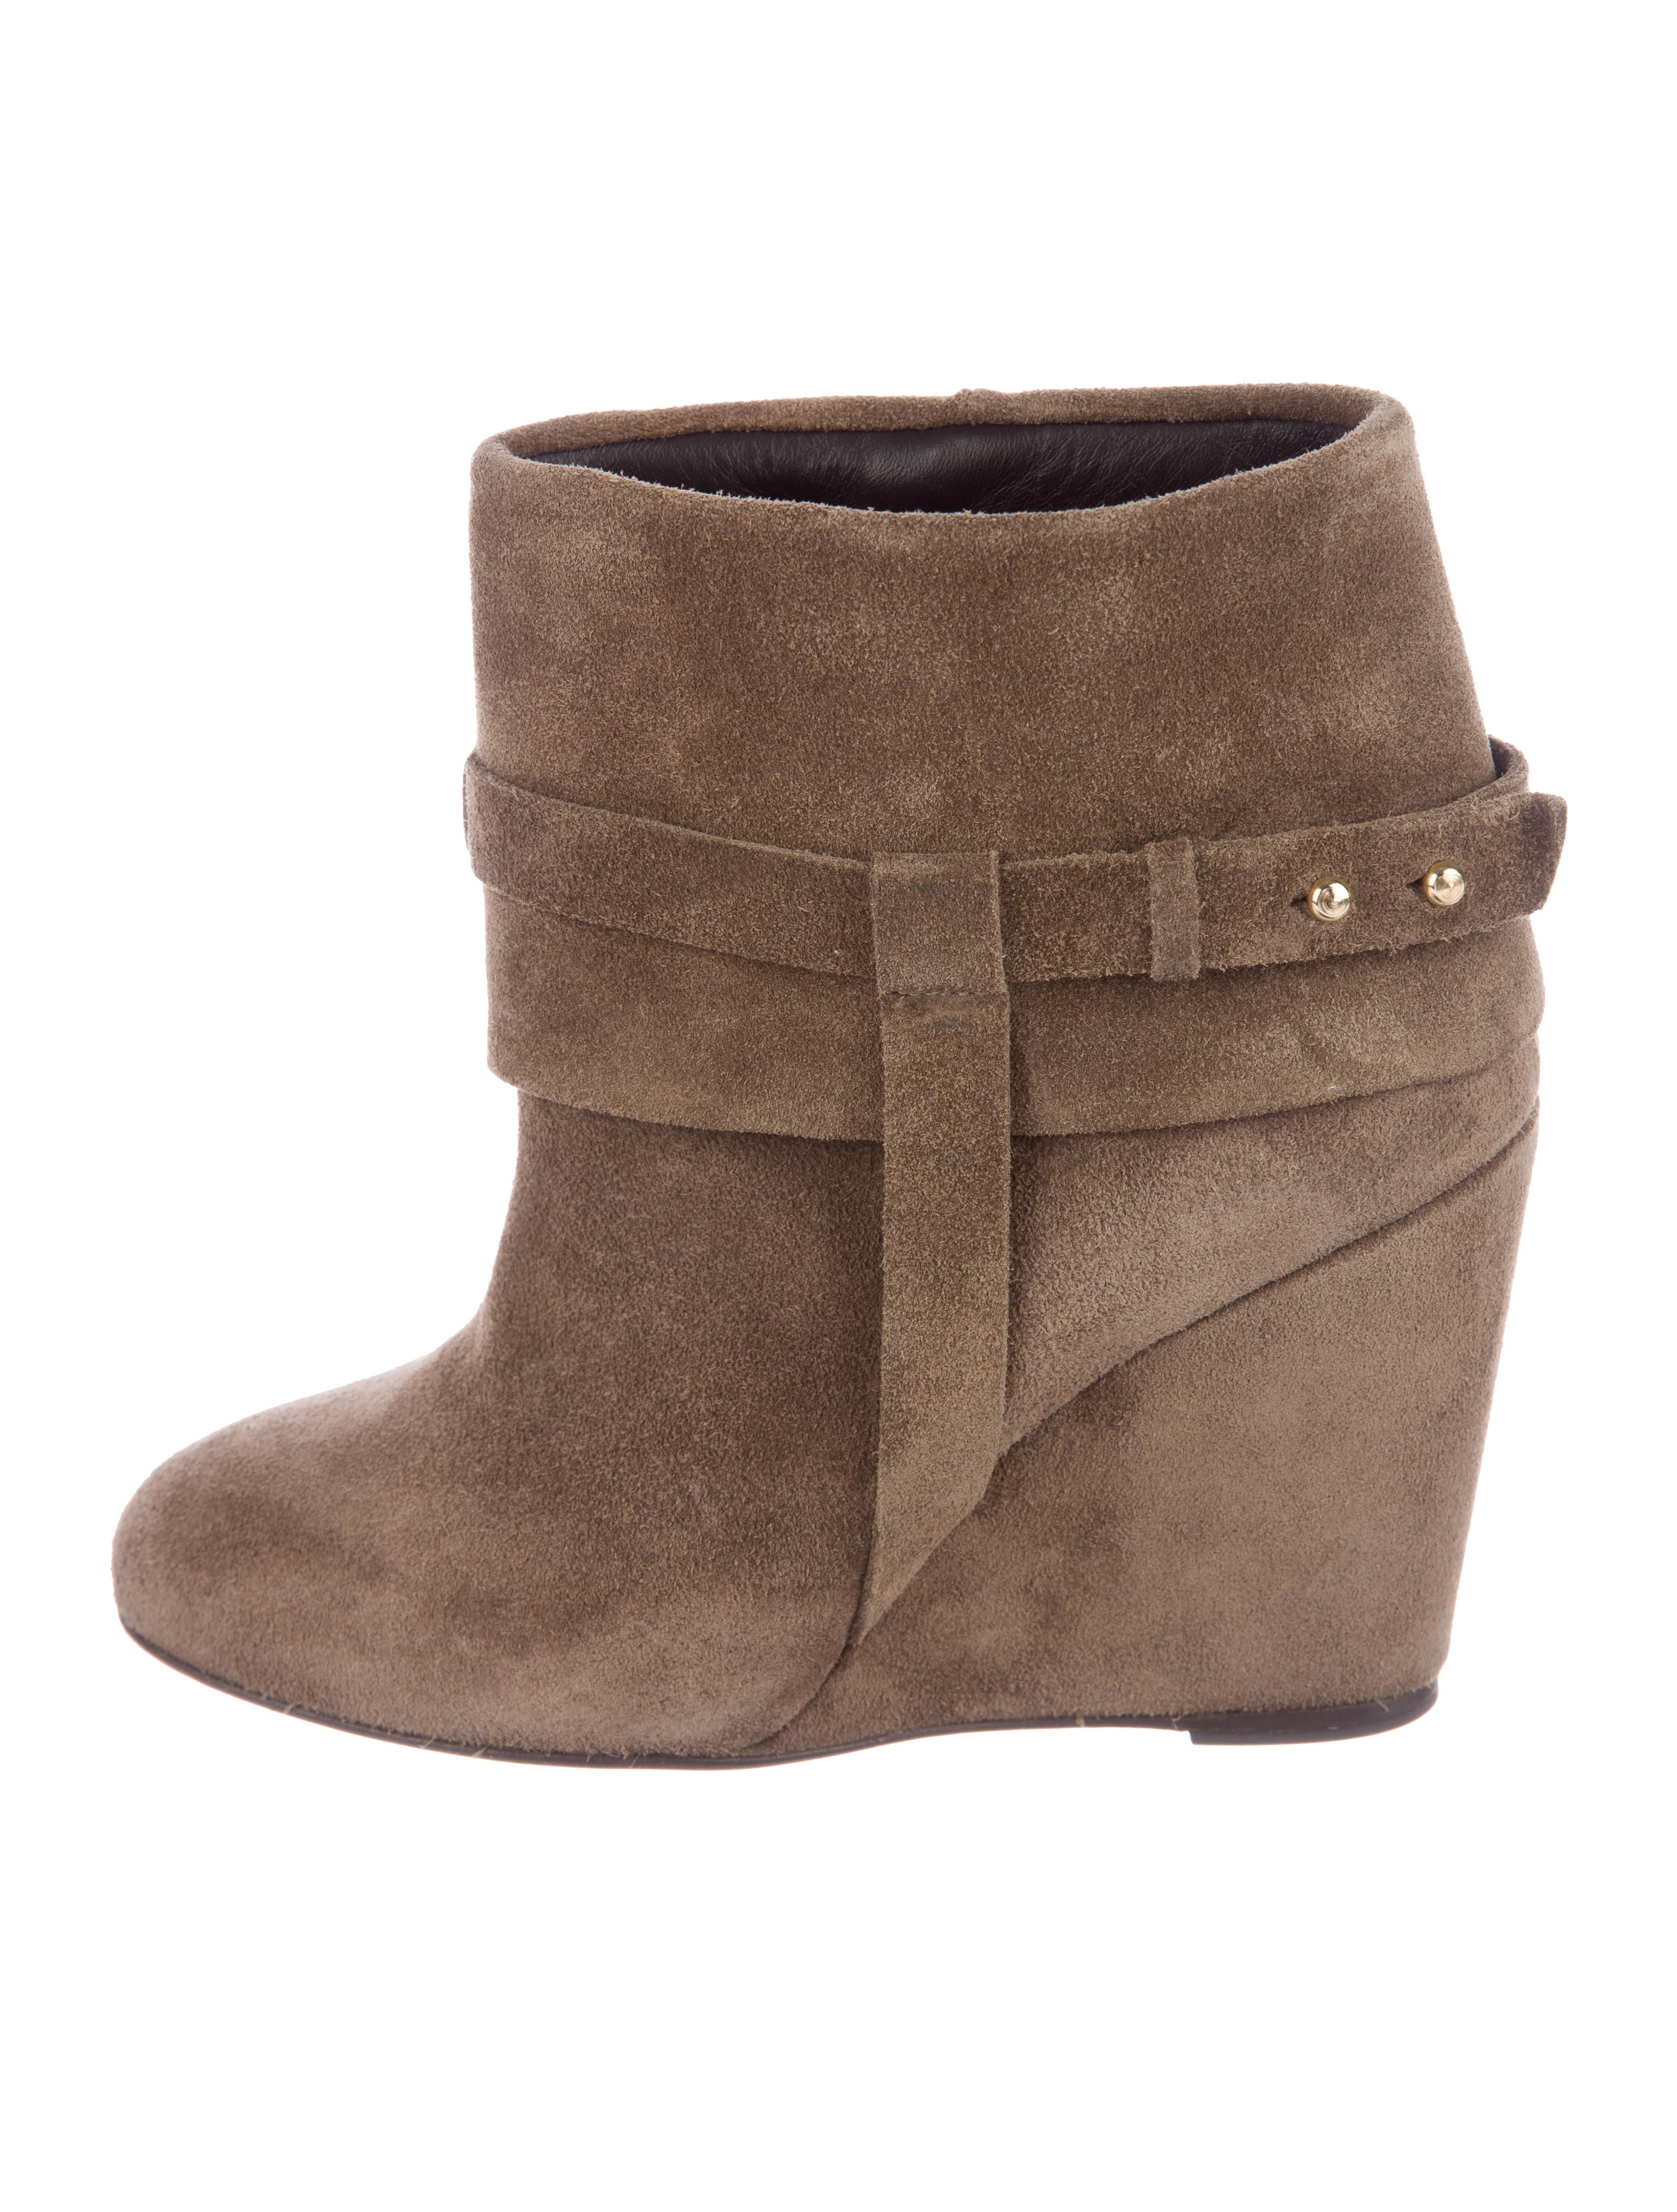 Tila March Suede Wedge Boots discount official wiki online buy cheap best seller many kinds of KFvm6Fk3v